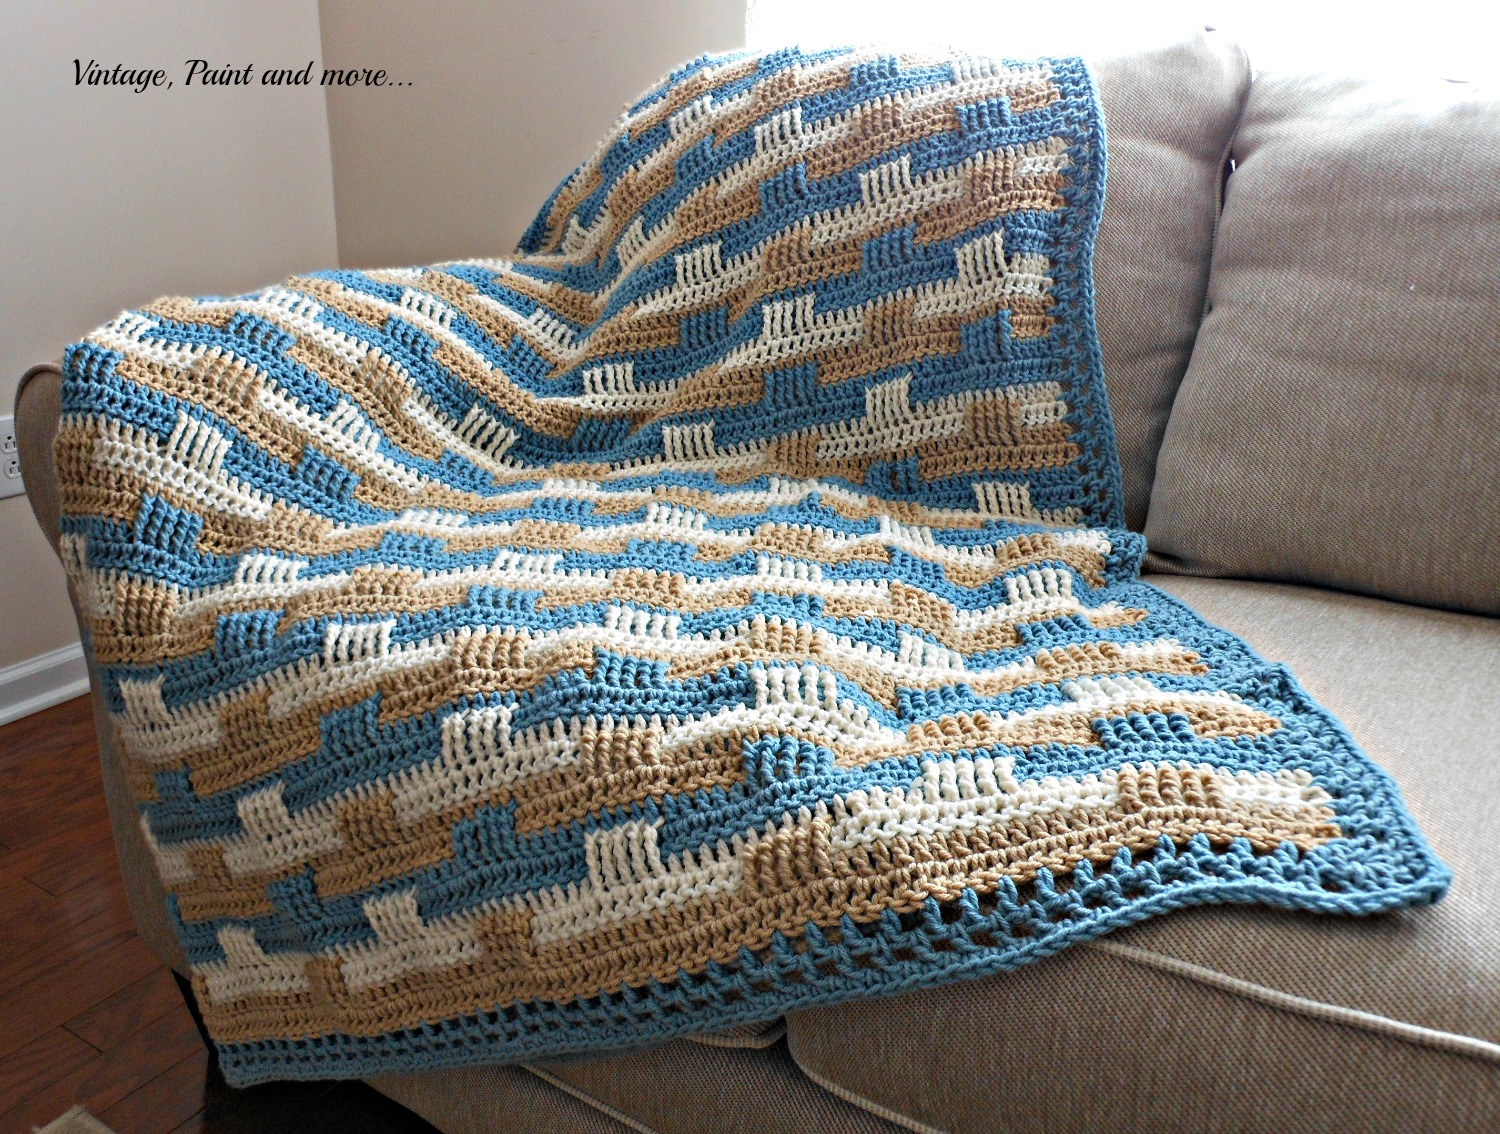 Crochet afghan and stenciled pillow vintage paint and more a crochet afghan done in a basket weave pattern for a coastal decor dt1010fo